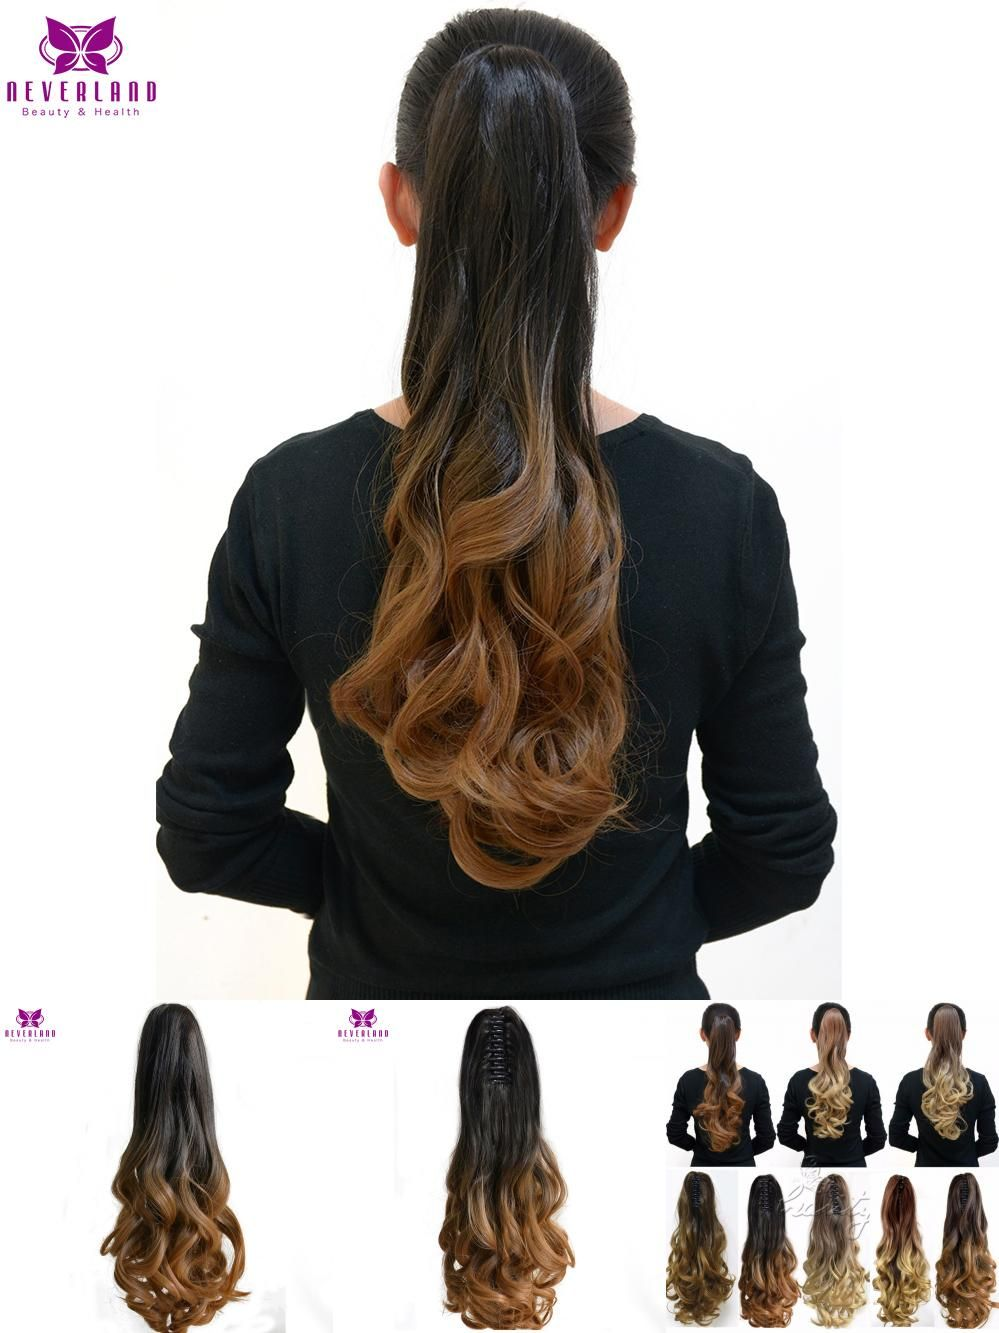 Visit To Buy Neverland 20 5 Colors Brown Ombre Ponytails Hair Extensions Wavy